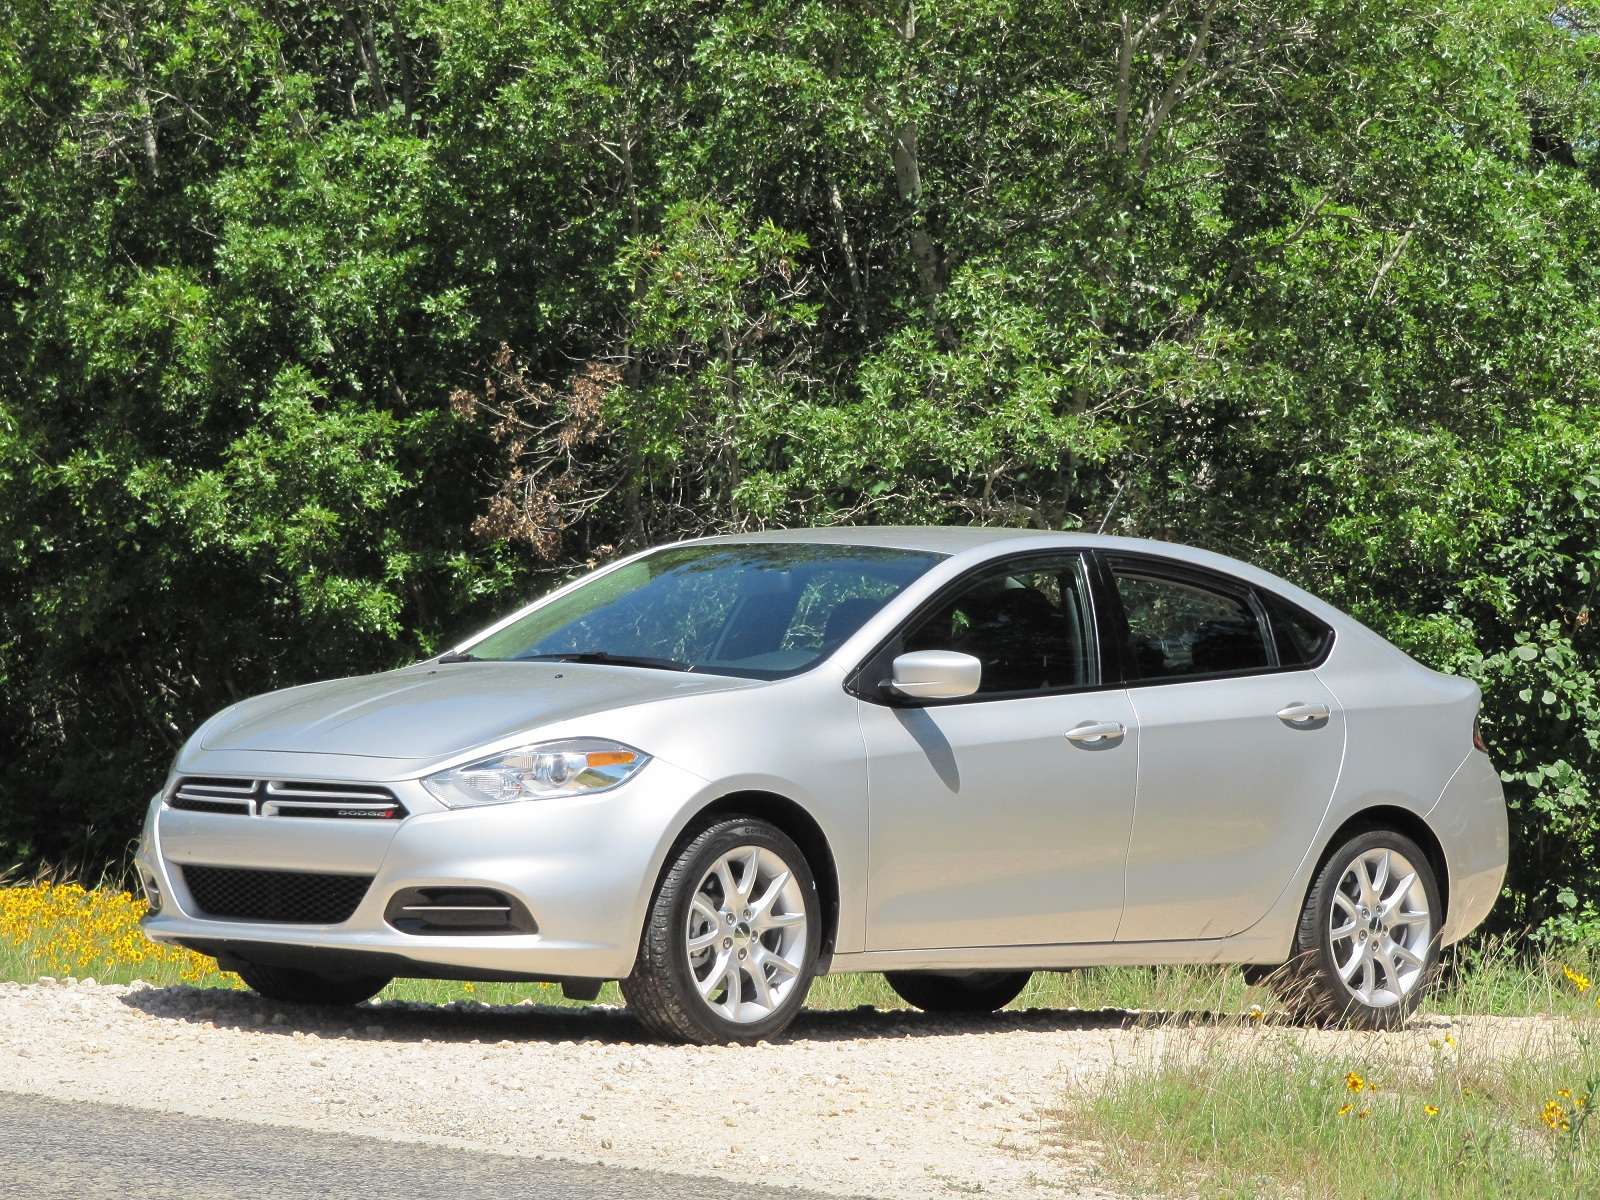 intl dart international dodge prices specs price overview